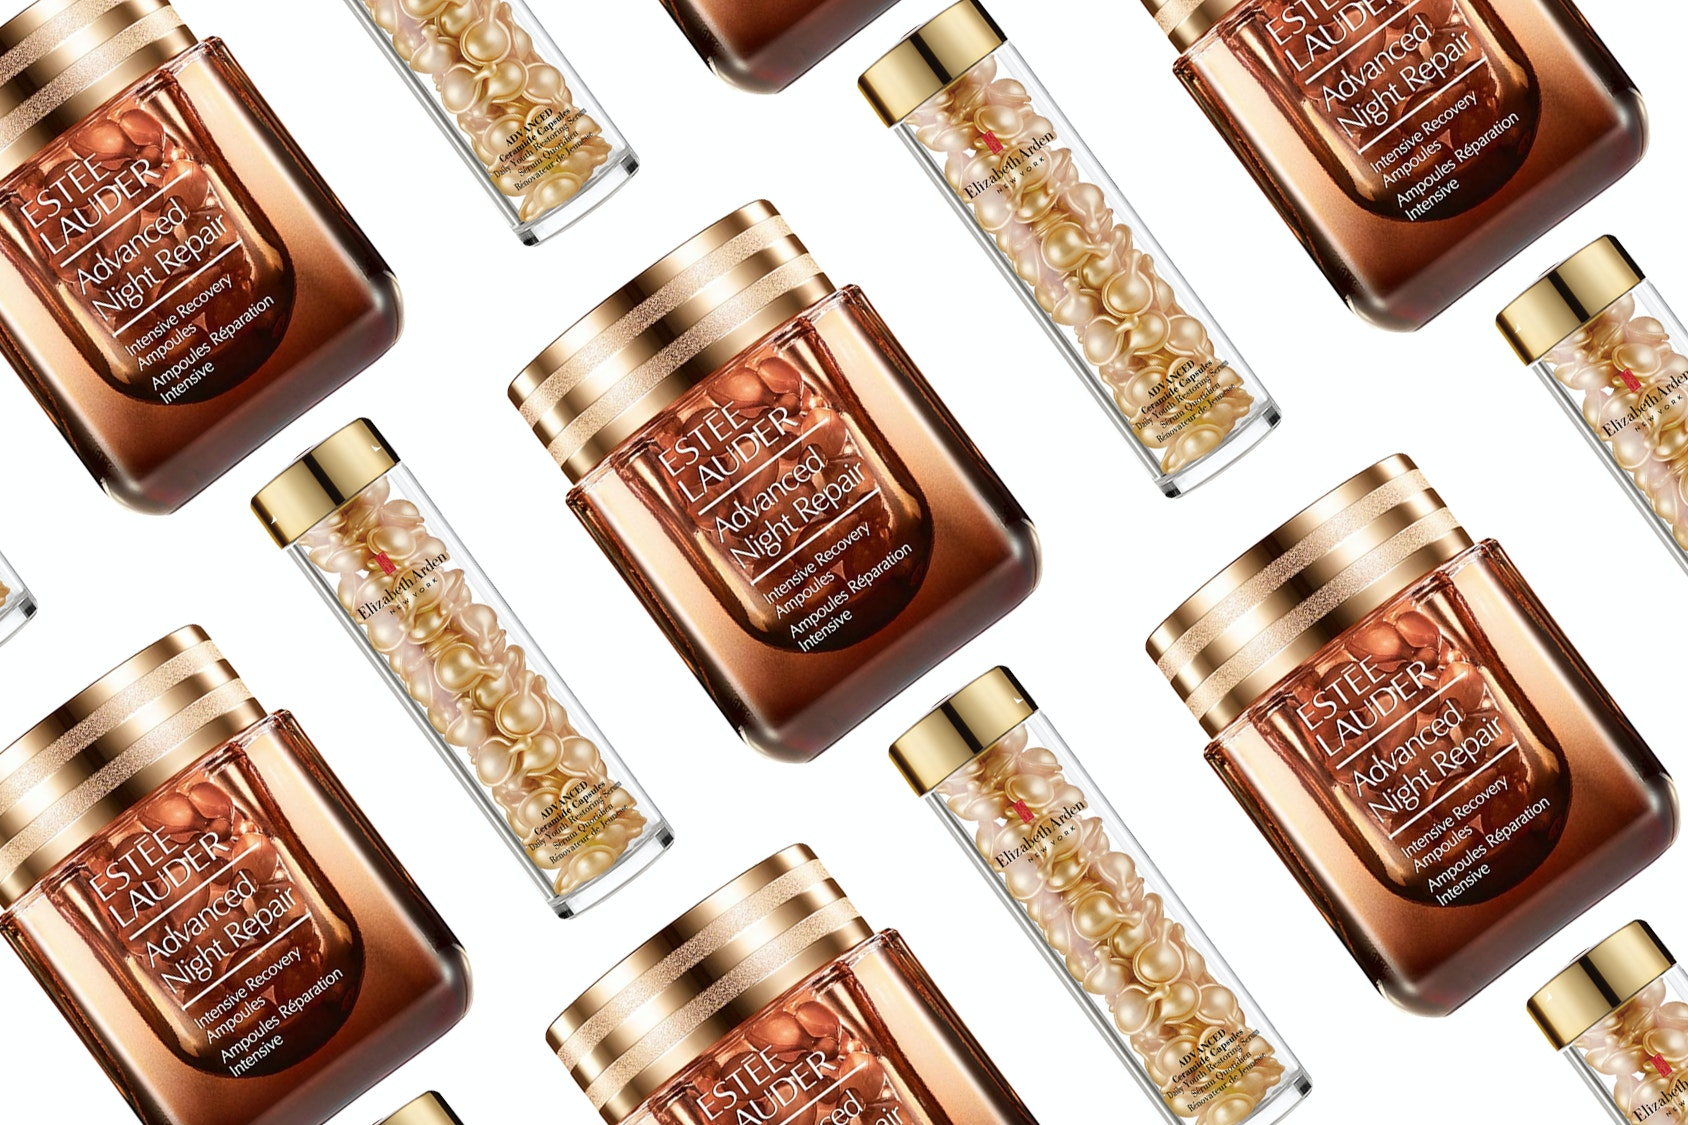 9 Ampoules to Try For Your Healthiest, Brightest Skin Yet